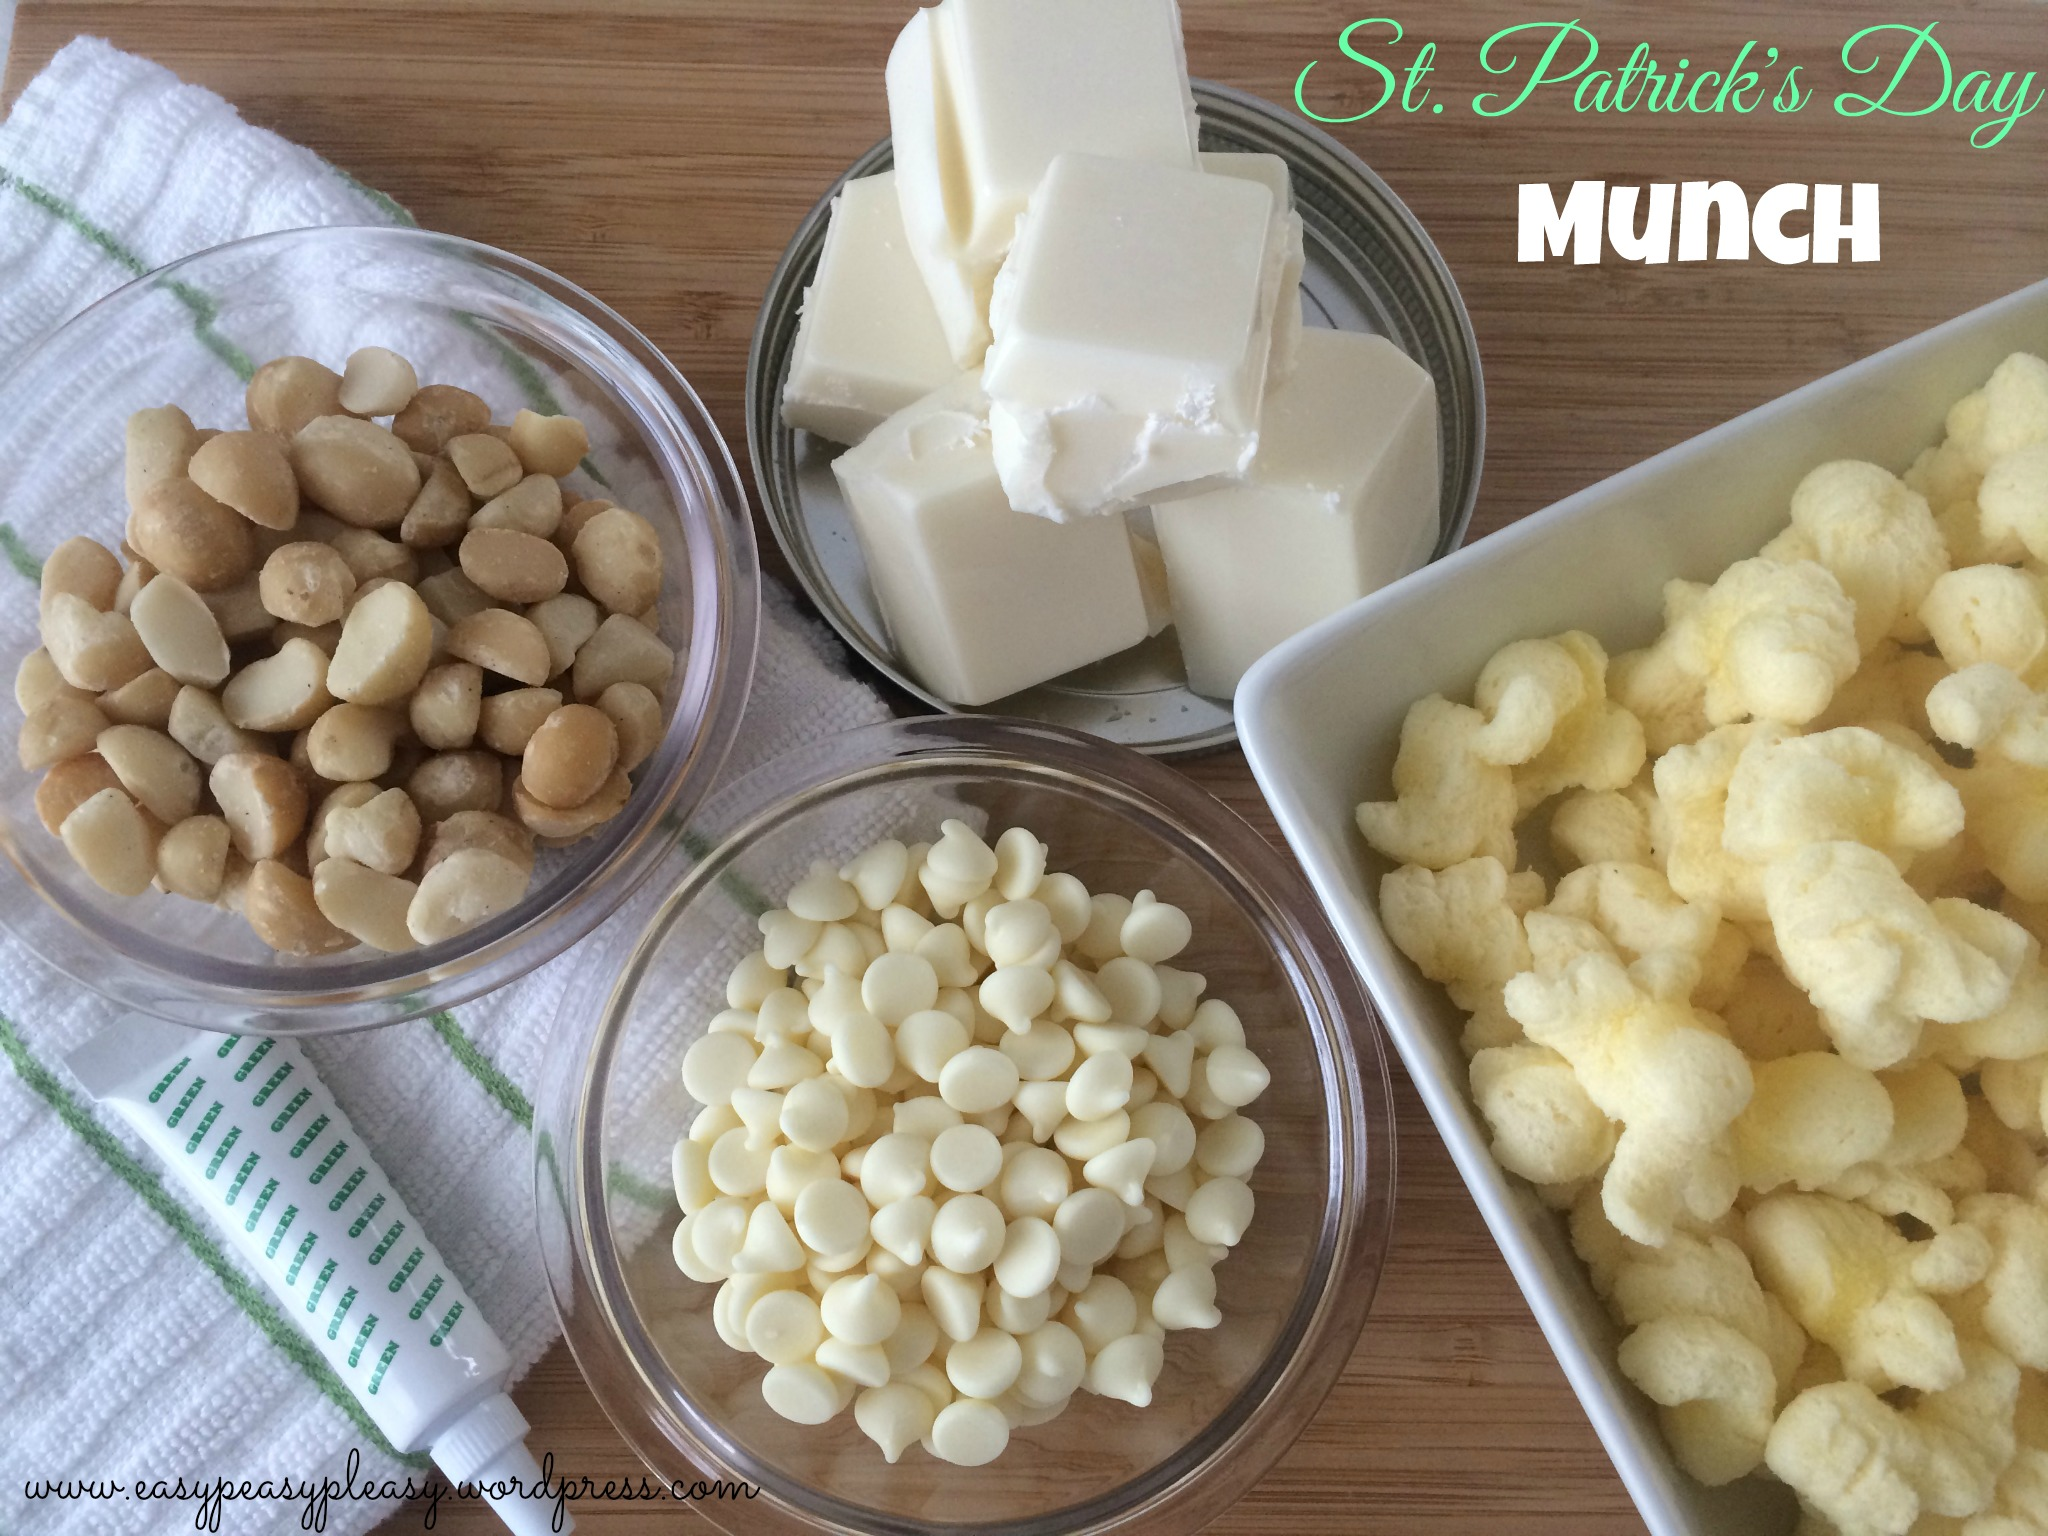 Come check out how to use these simple ingredients to make St. Patrick's Day Munch at https://easypeasypleasy.com